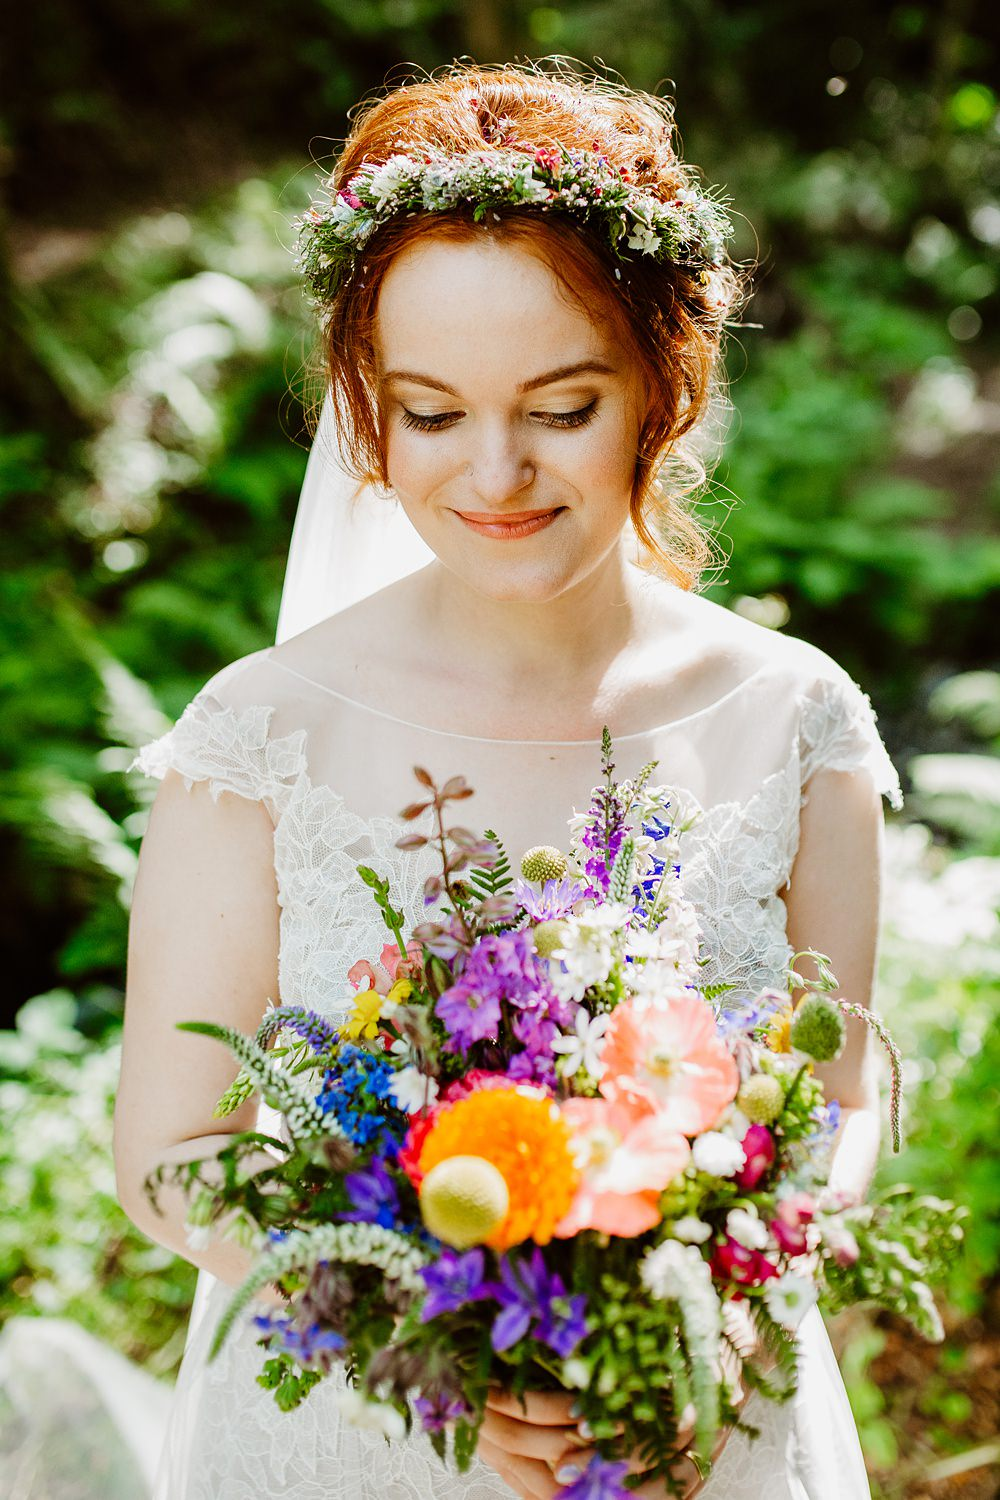 Bouquet Flowers Bride Bridal Poppy Craspedia Colourful Multicolour Flower Crown Canonteign Falls Wedding Holly Collings Photography